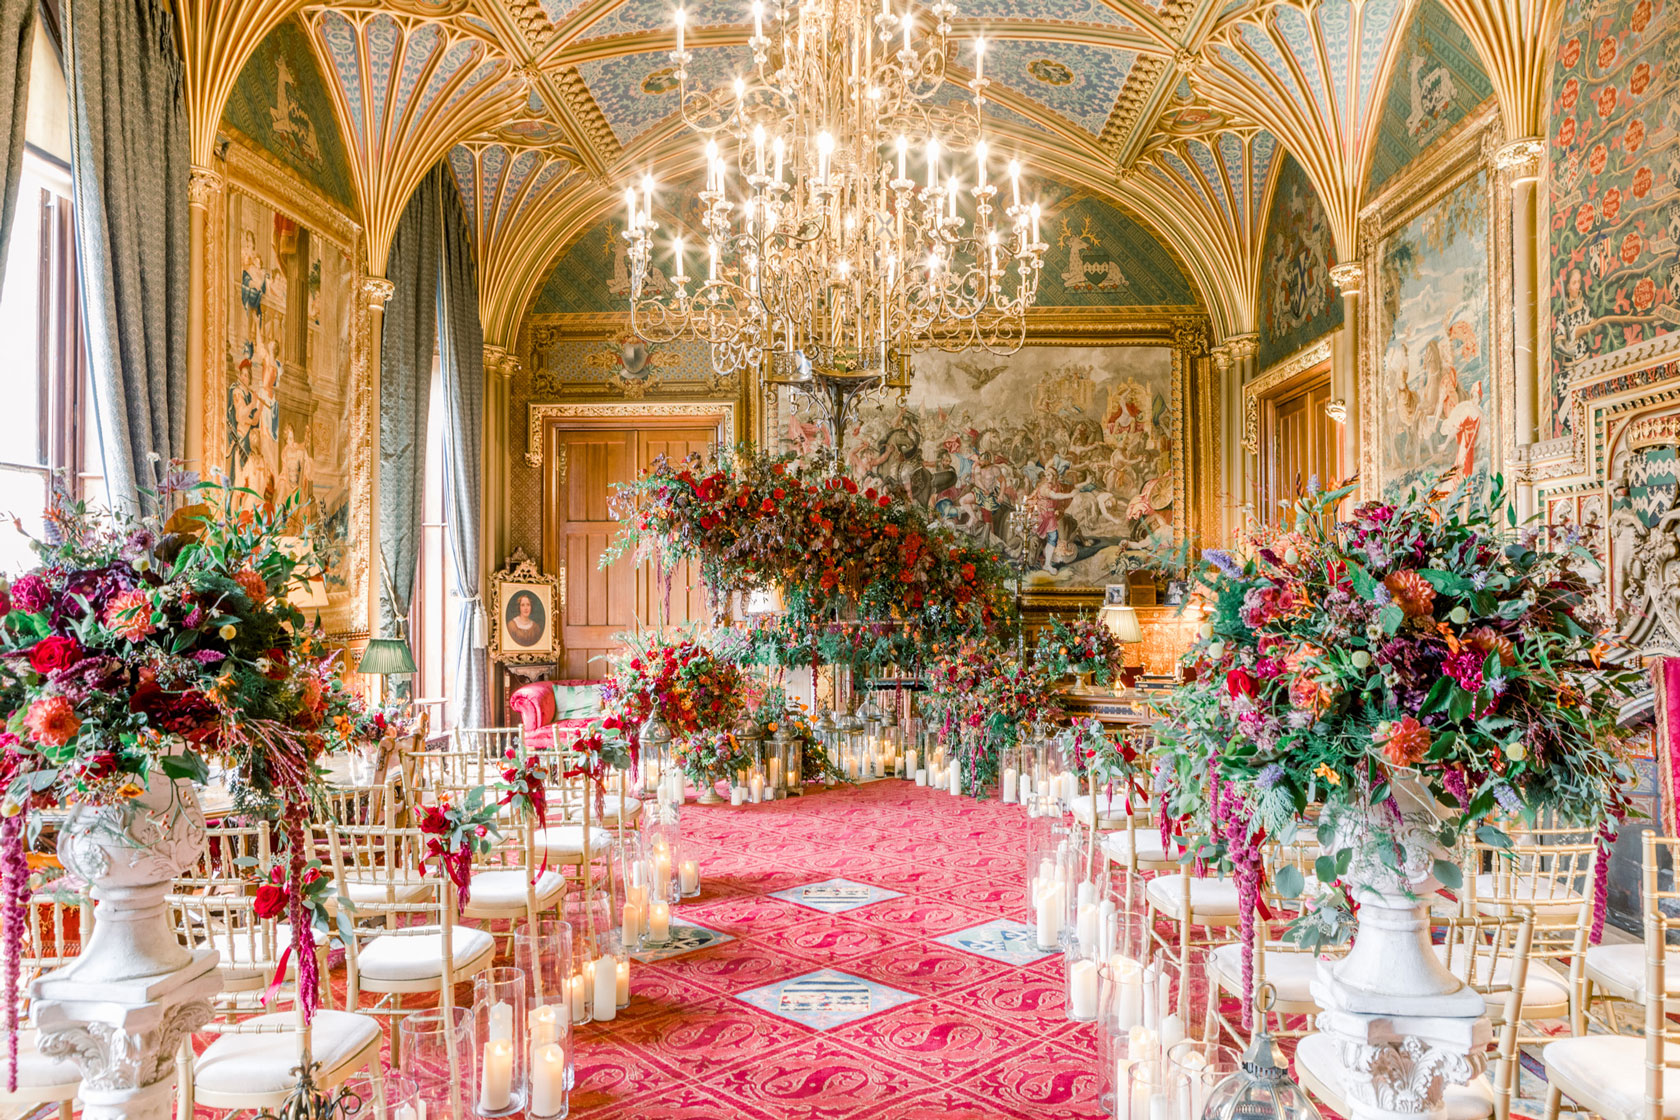 An ornate regal ceremony in a castle fit for a royal couple